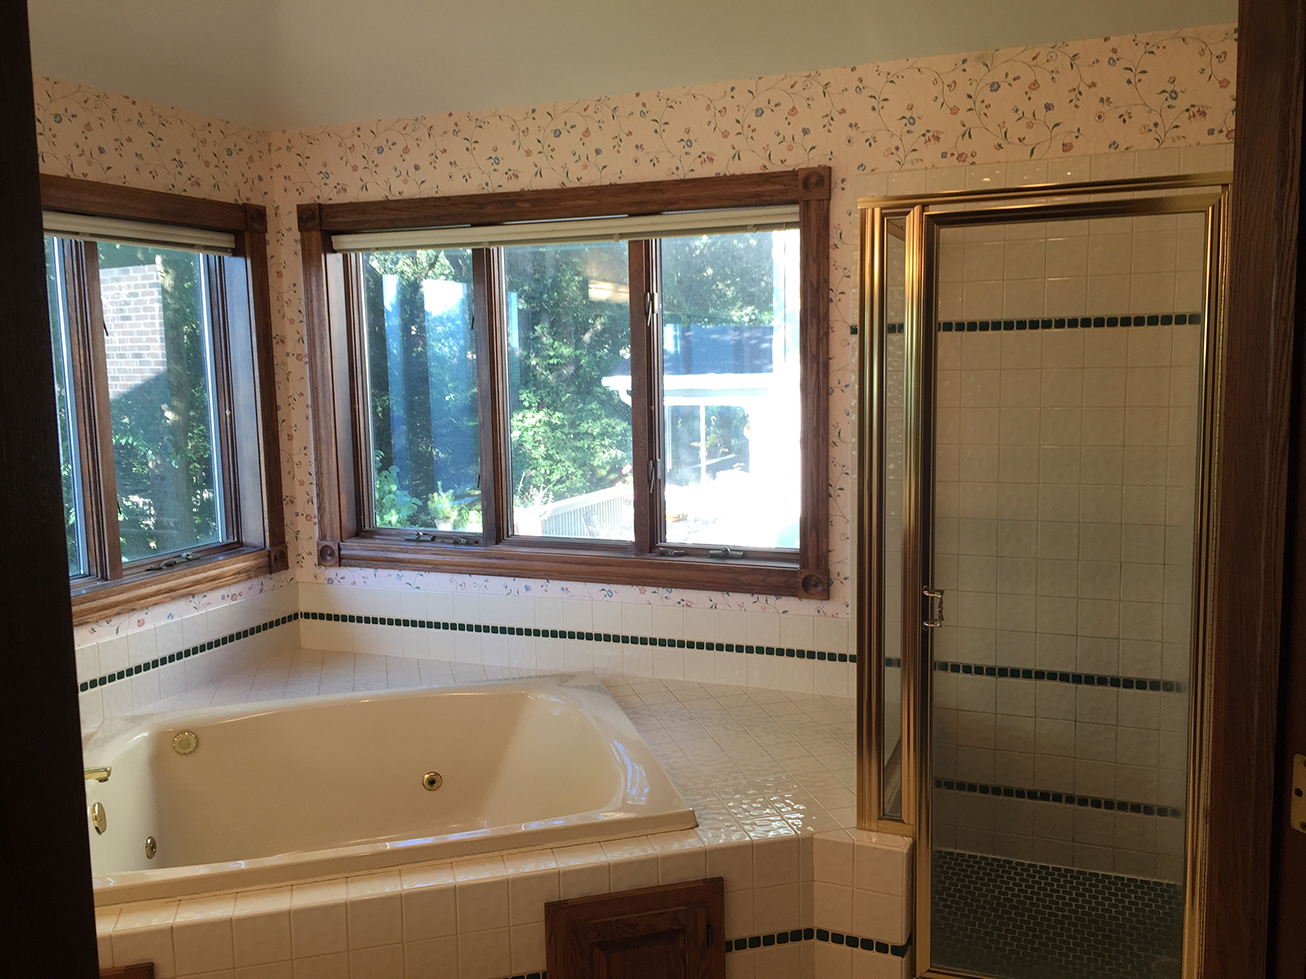 Apple Valley Bathroom Remodel: BEFORE